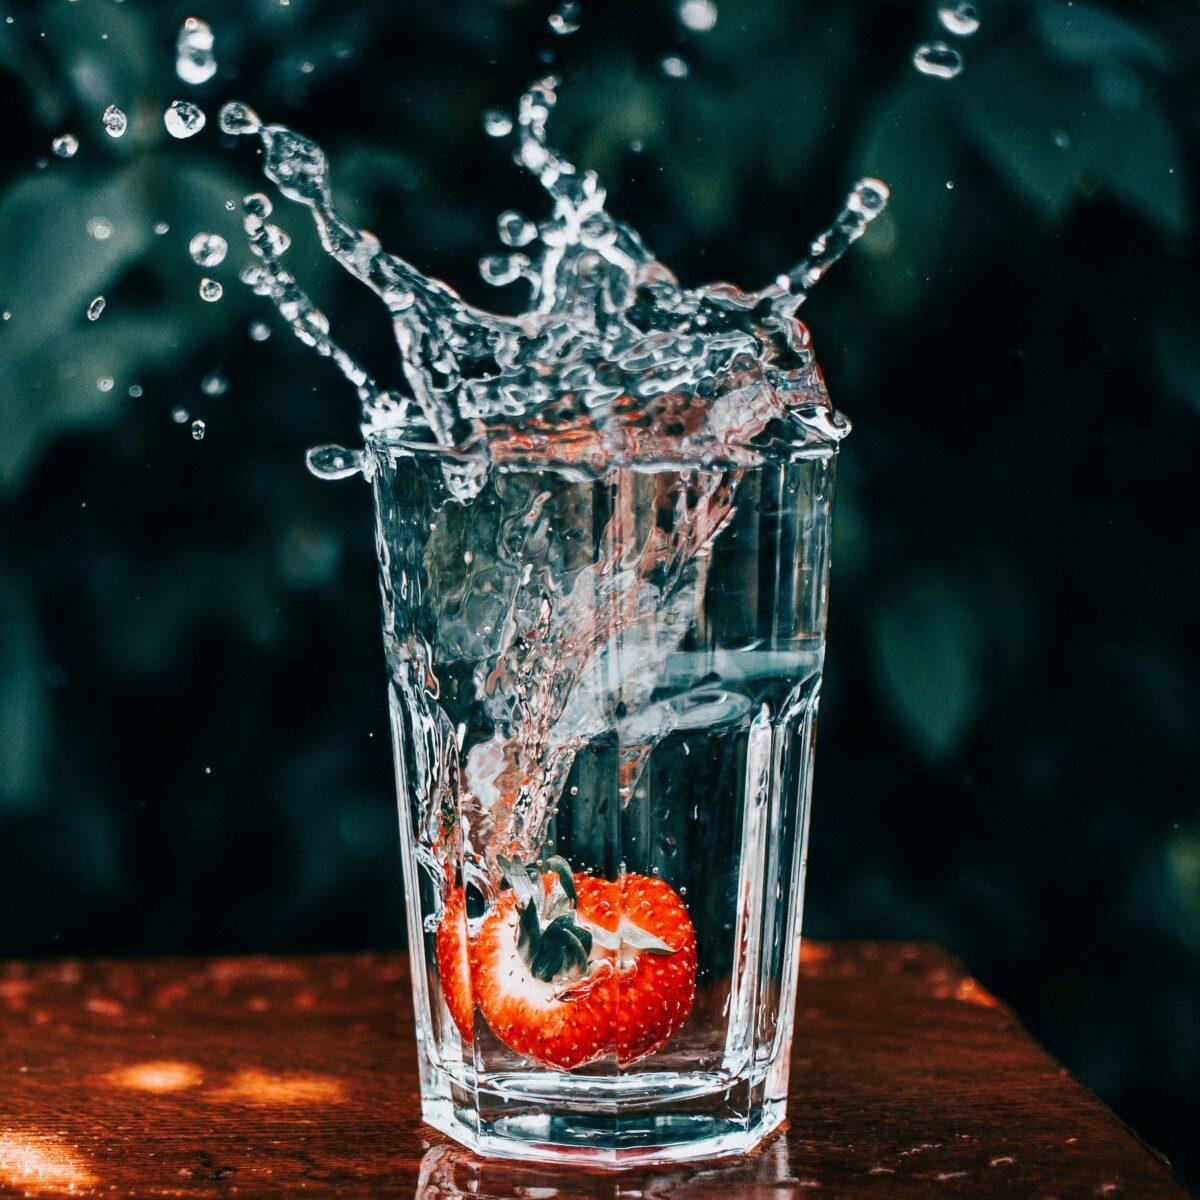 Detailed photo of a strawberry splashing into a glass